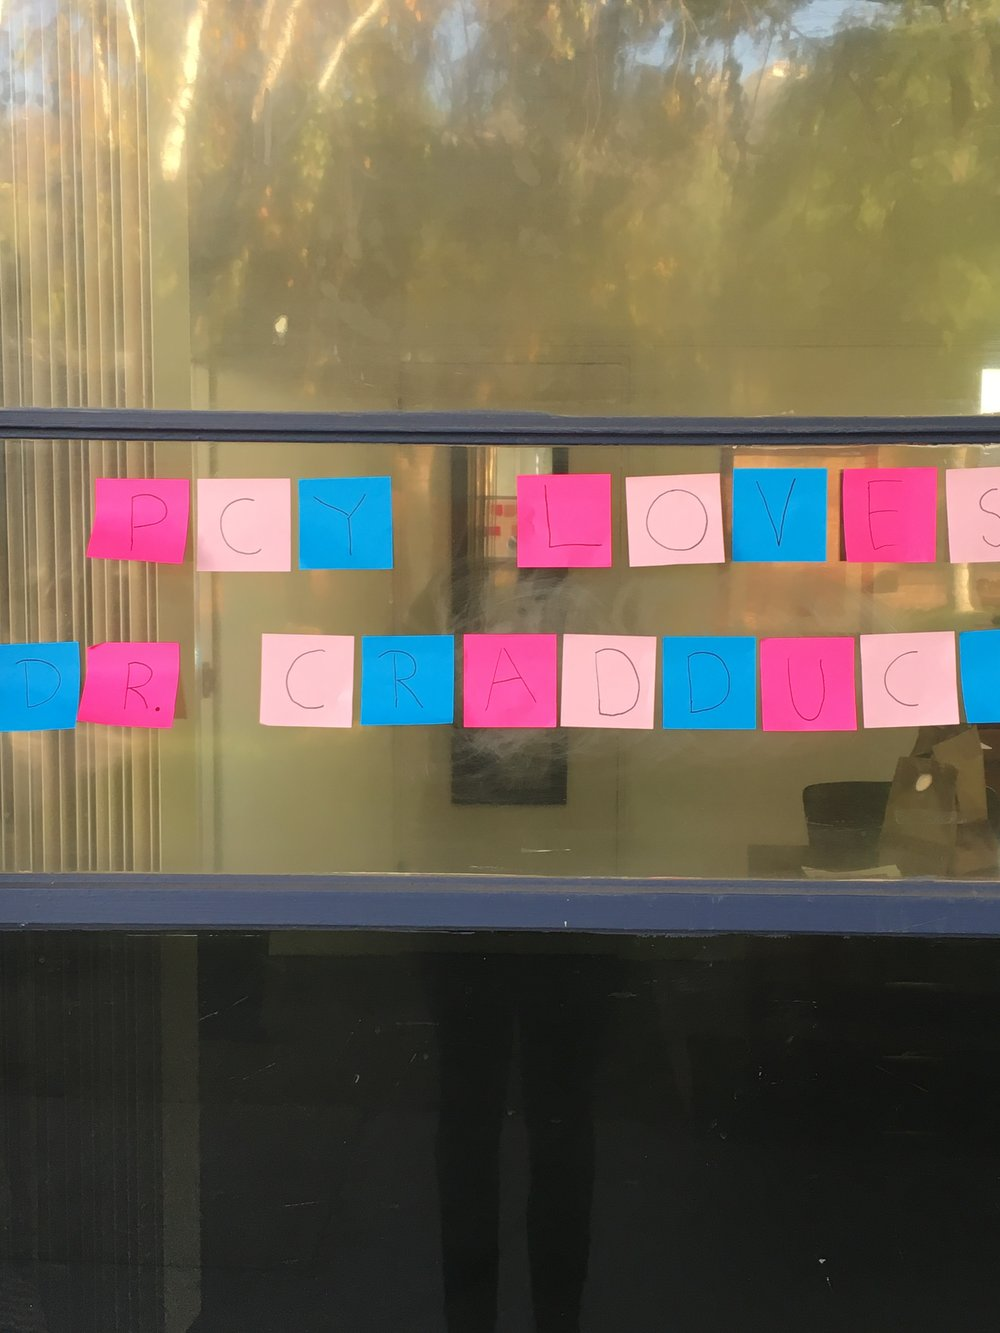 "Sticky notes on a window ""PCY loves Dr. Cradduck."""